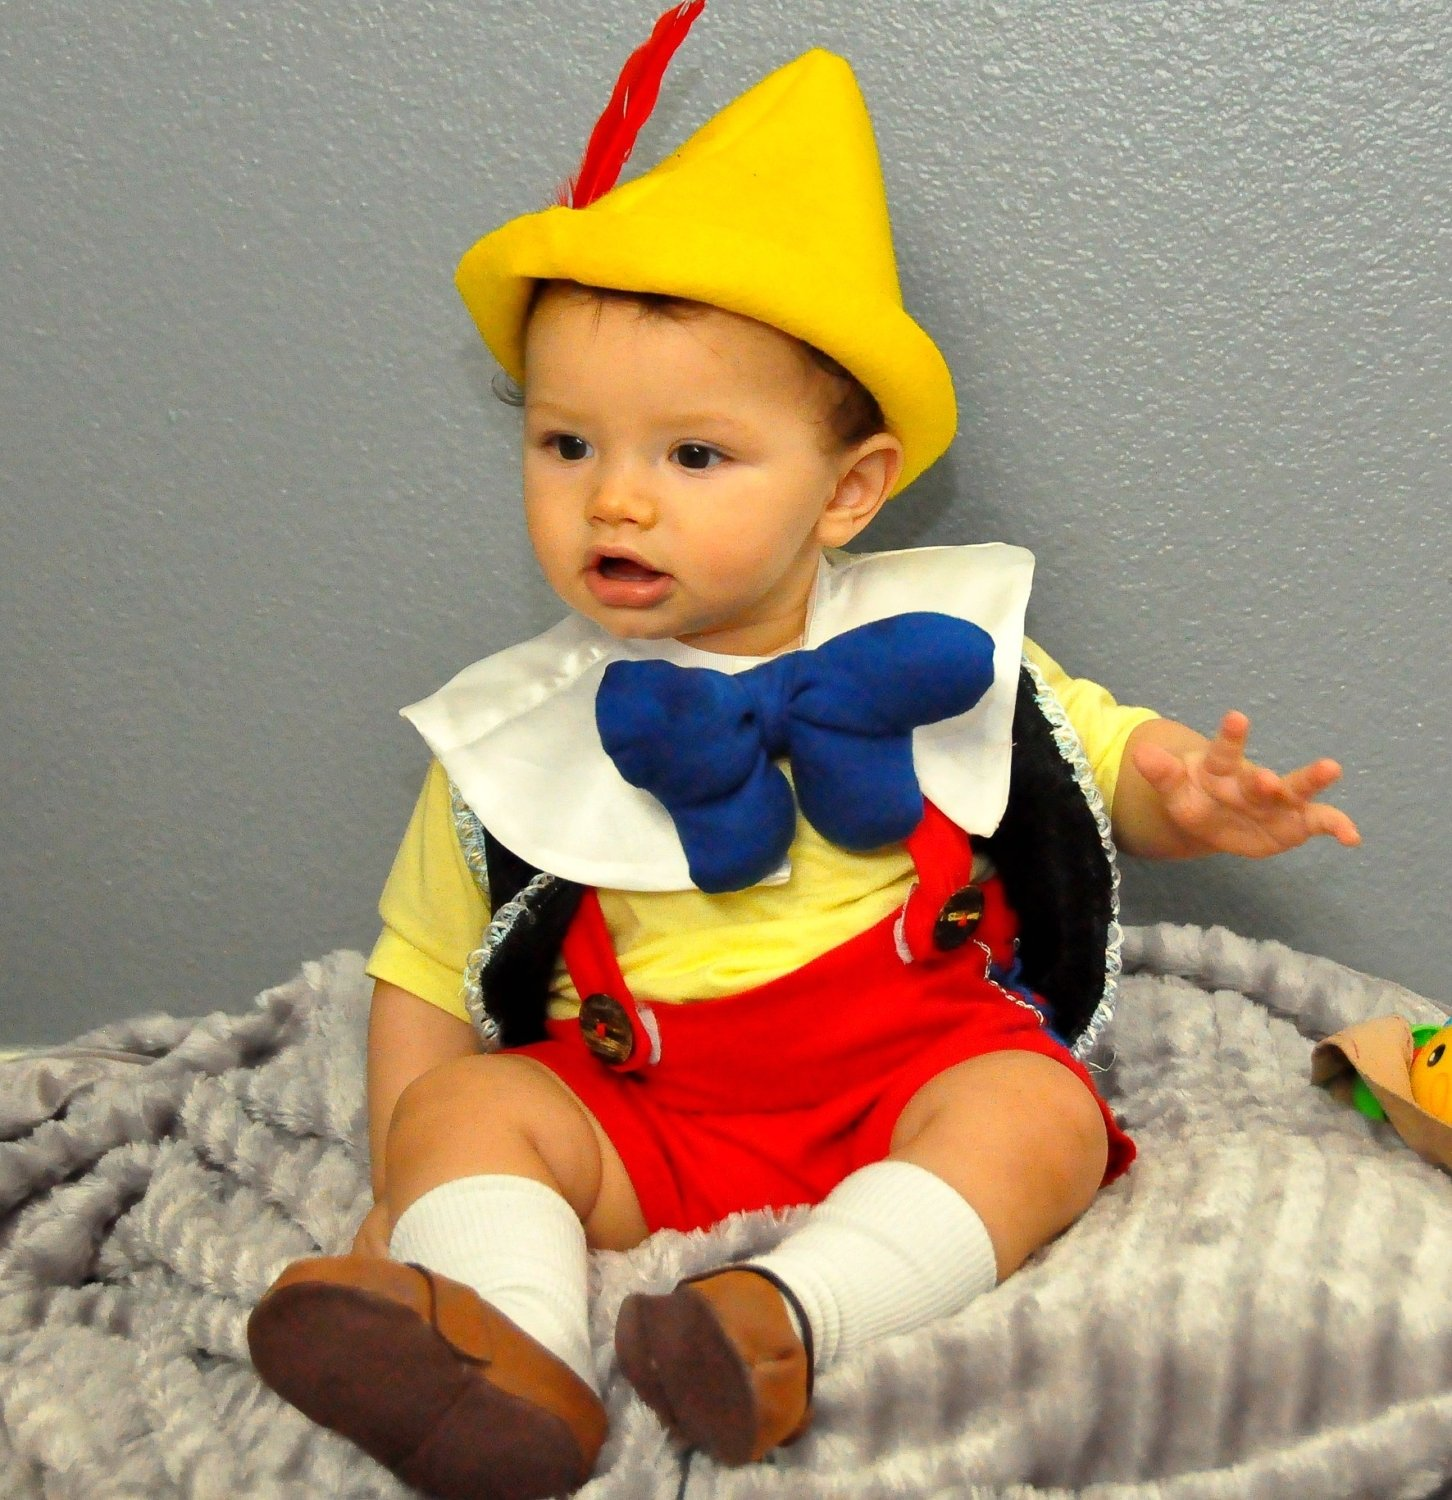 10 Attractive Baby Costume Ideas For Boys pinocchio inspired costume babies boys toddler kids children infant 1 2020